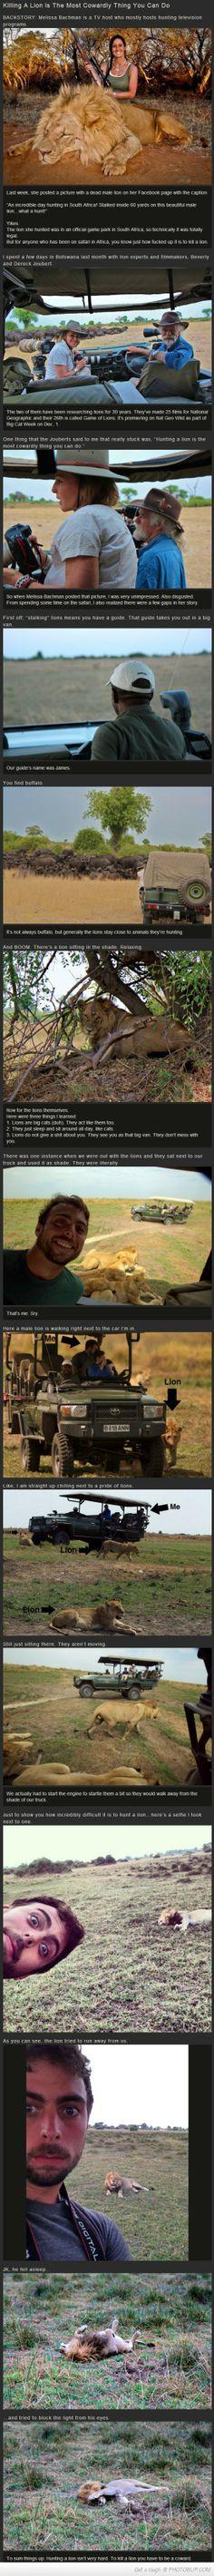 Killing A Lion Is The Most Cowardly Thing You Can Do